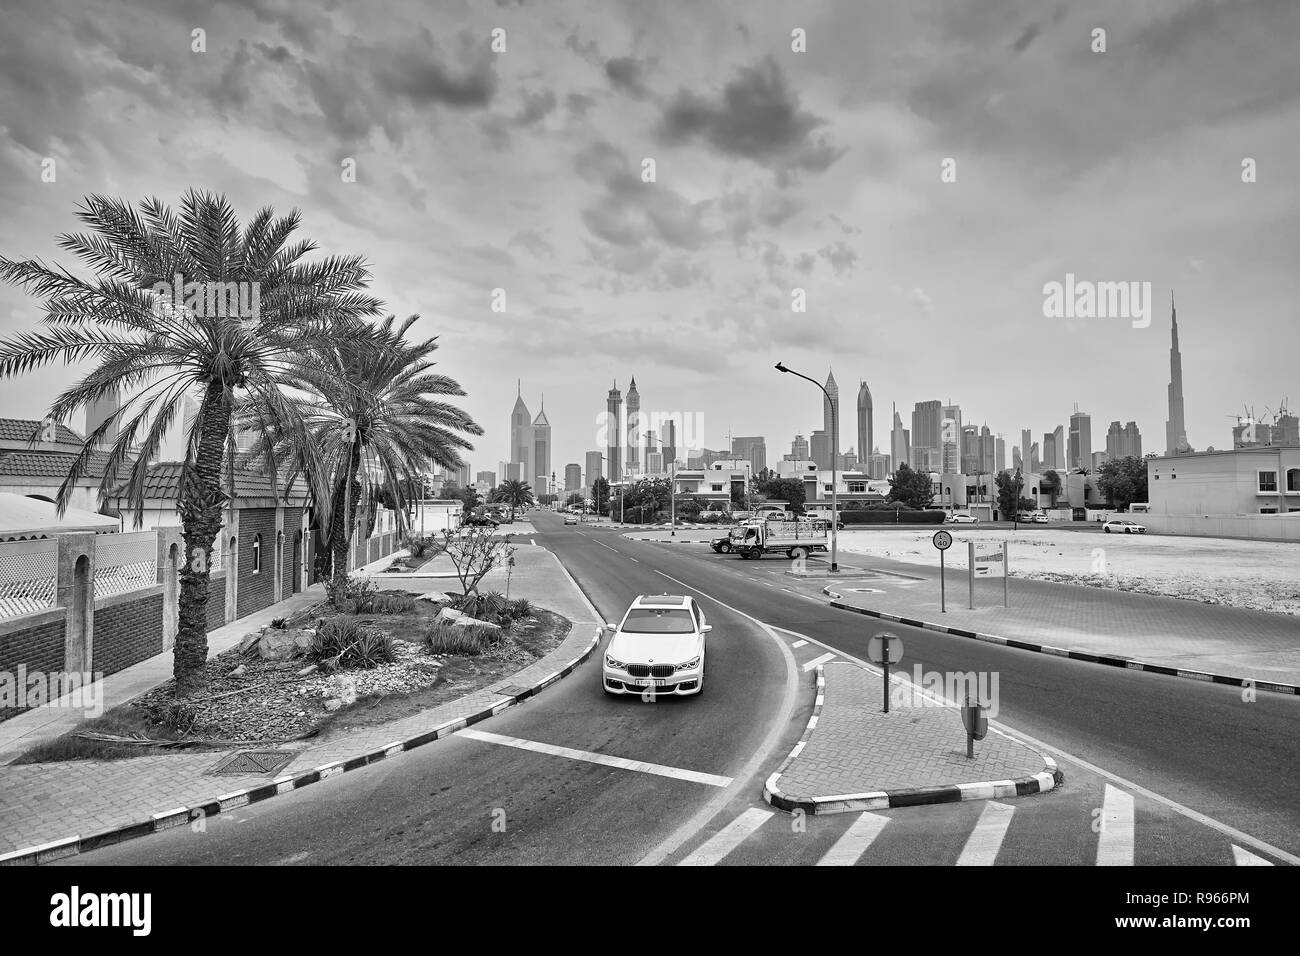 Dubai, United Arab Emirates - May 01, 2017: View of a street with the city iconic skyline. - Stock Image